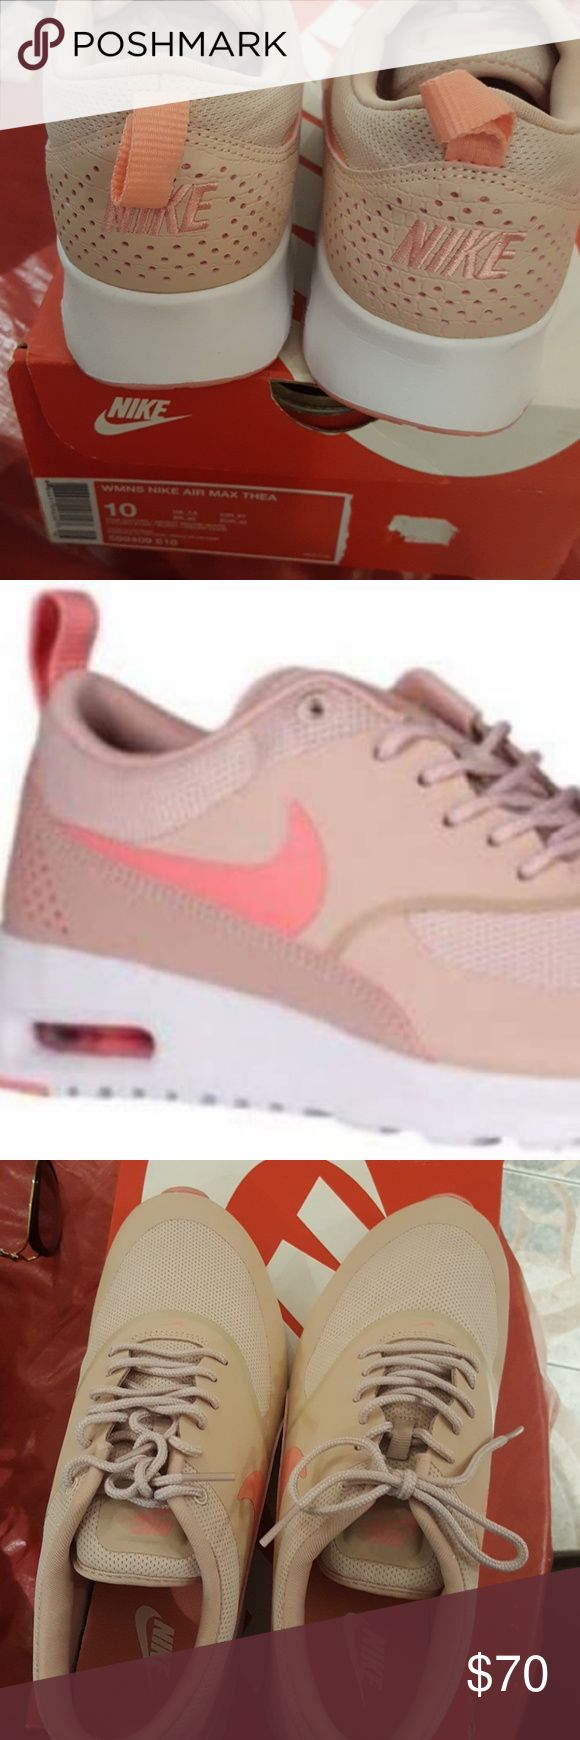 Womens Nike Air Max Thea New pink rose oxford/bright melon white Nike size 10 Nike Shoes Sneakers